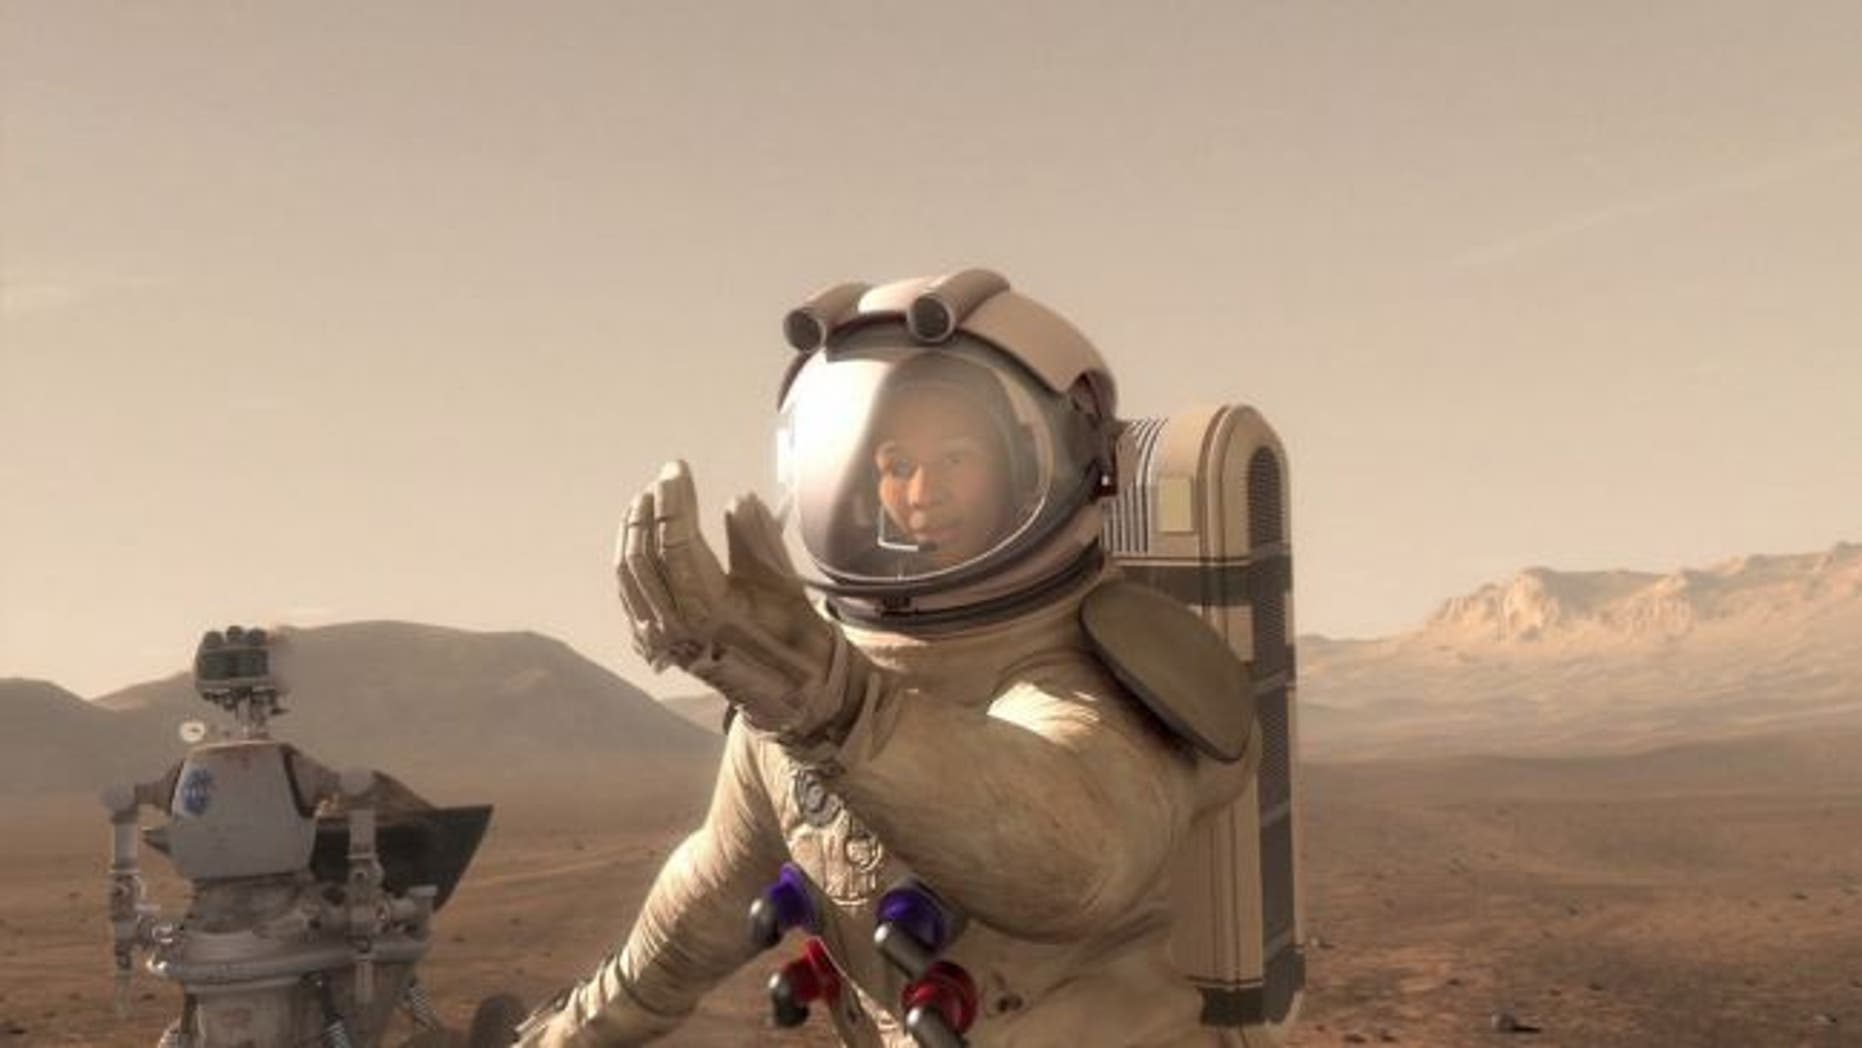 NASA Administrator Jim Bridenstine says the first astronaut to walk on Mars could be a woman. (Credit: NASA)